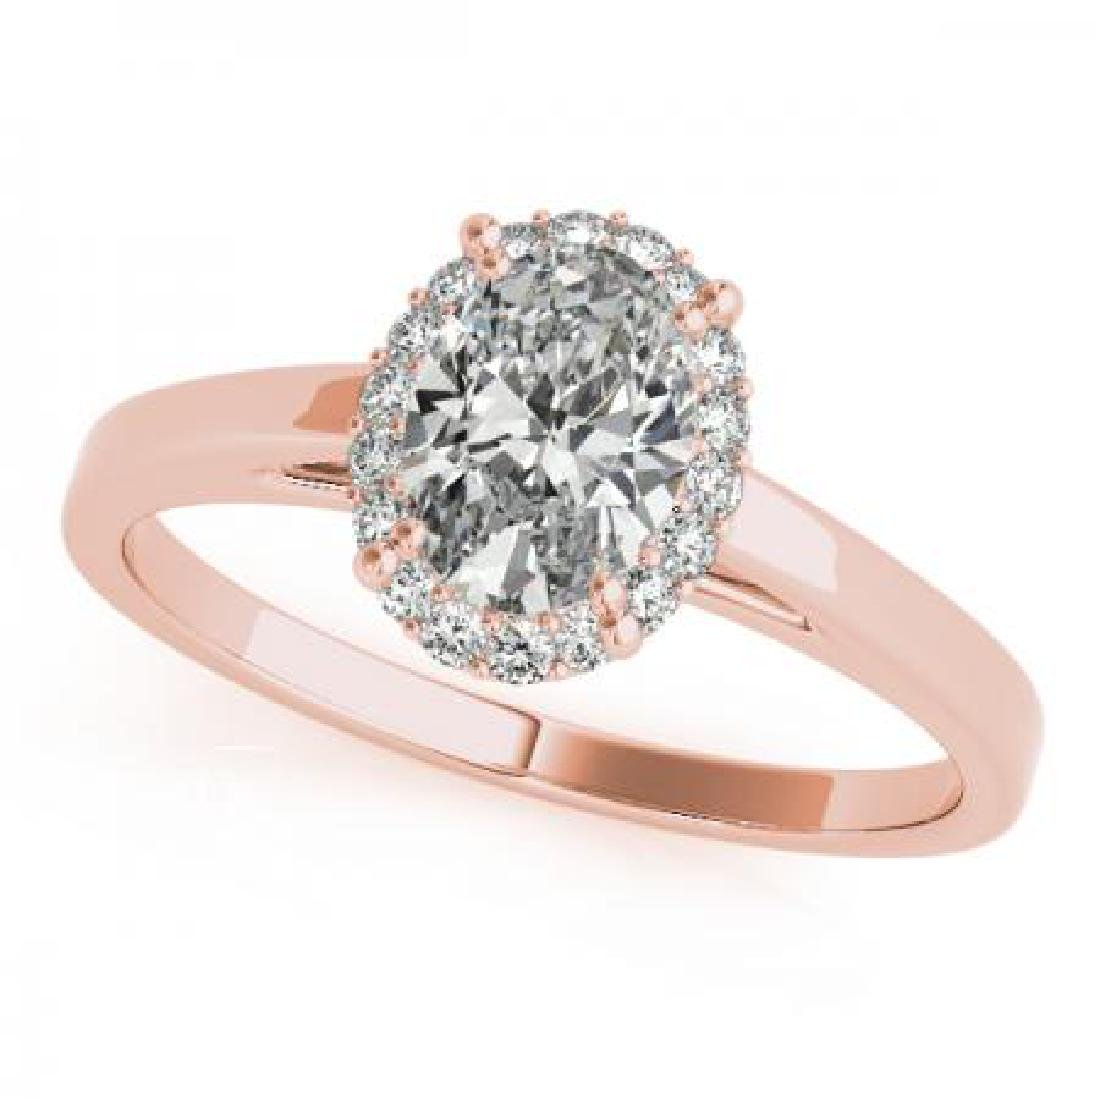 CERTIFIED 14KT ROSE GOLD .95 CT G-H/VS-SI1 DIAMOND HALO